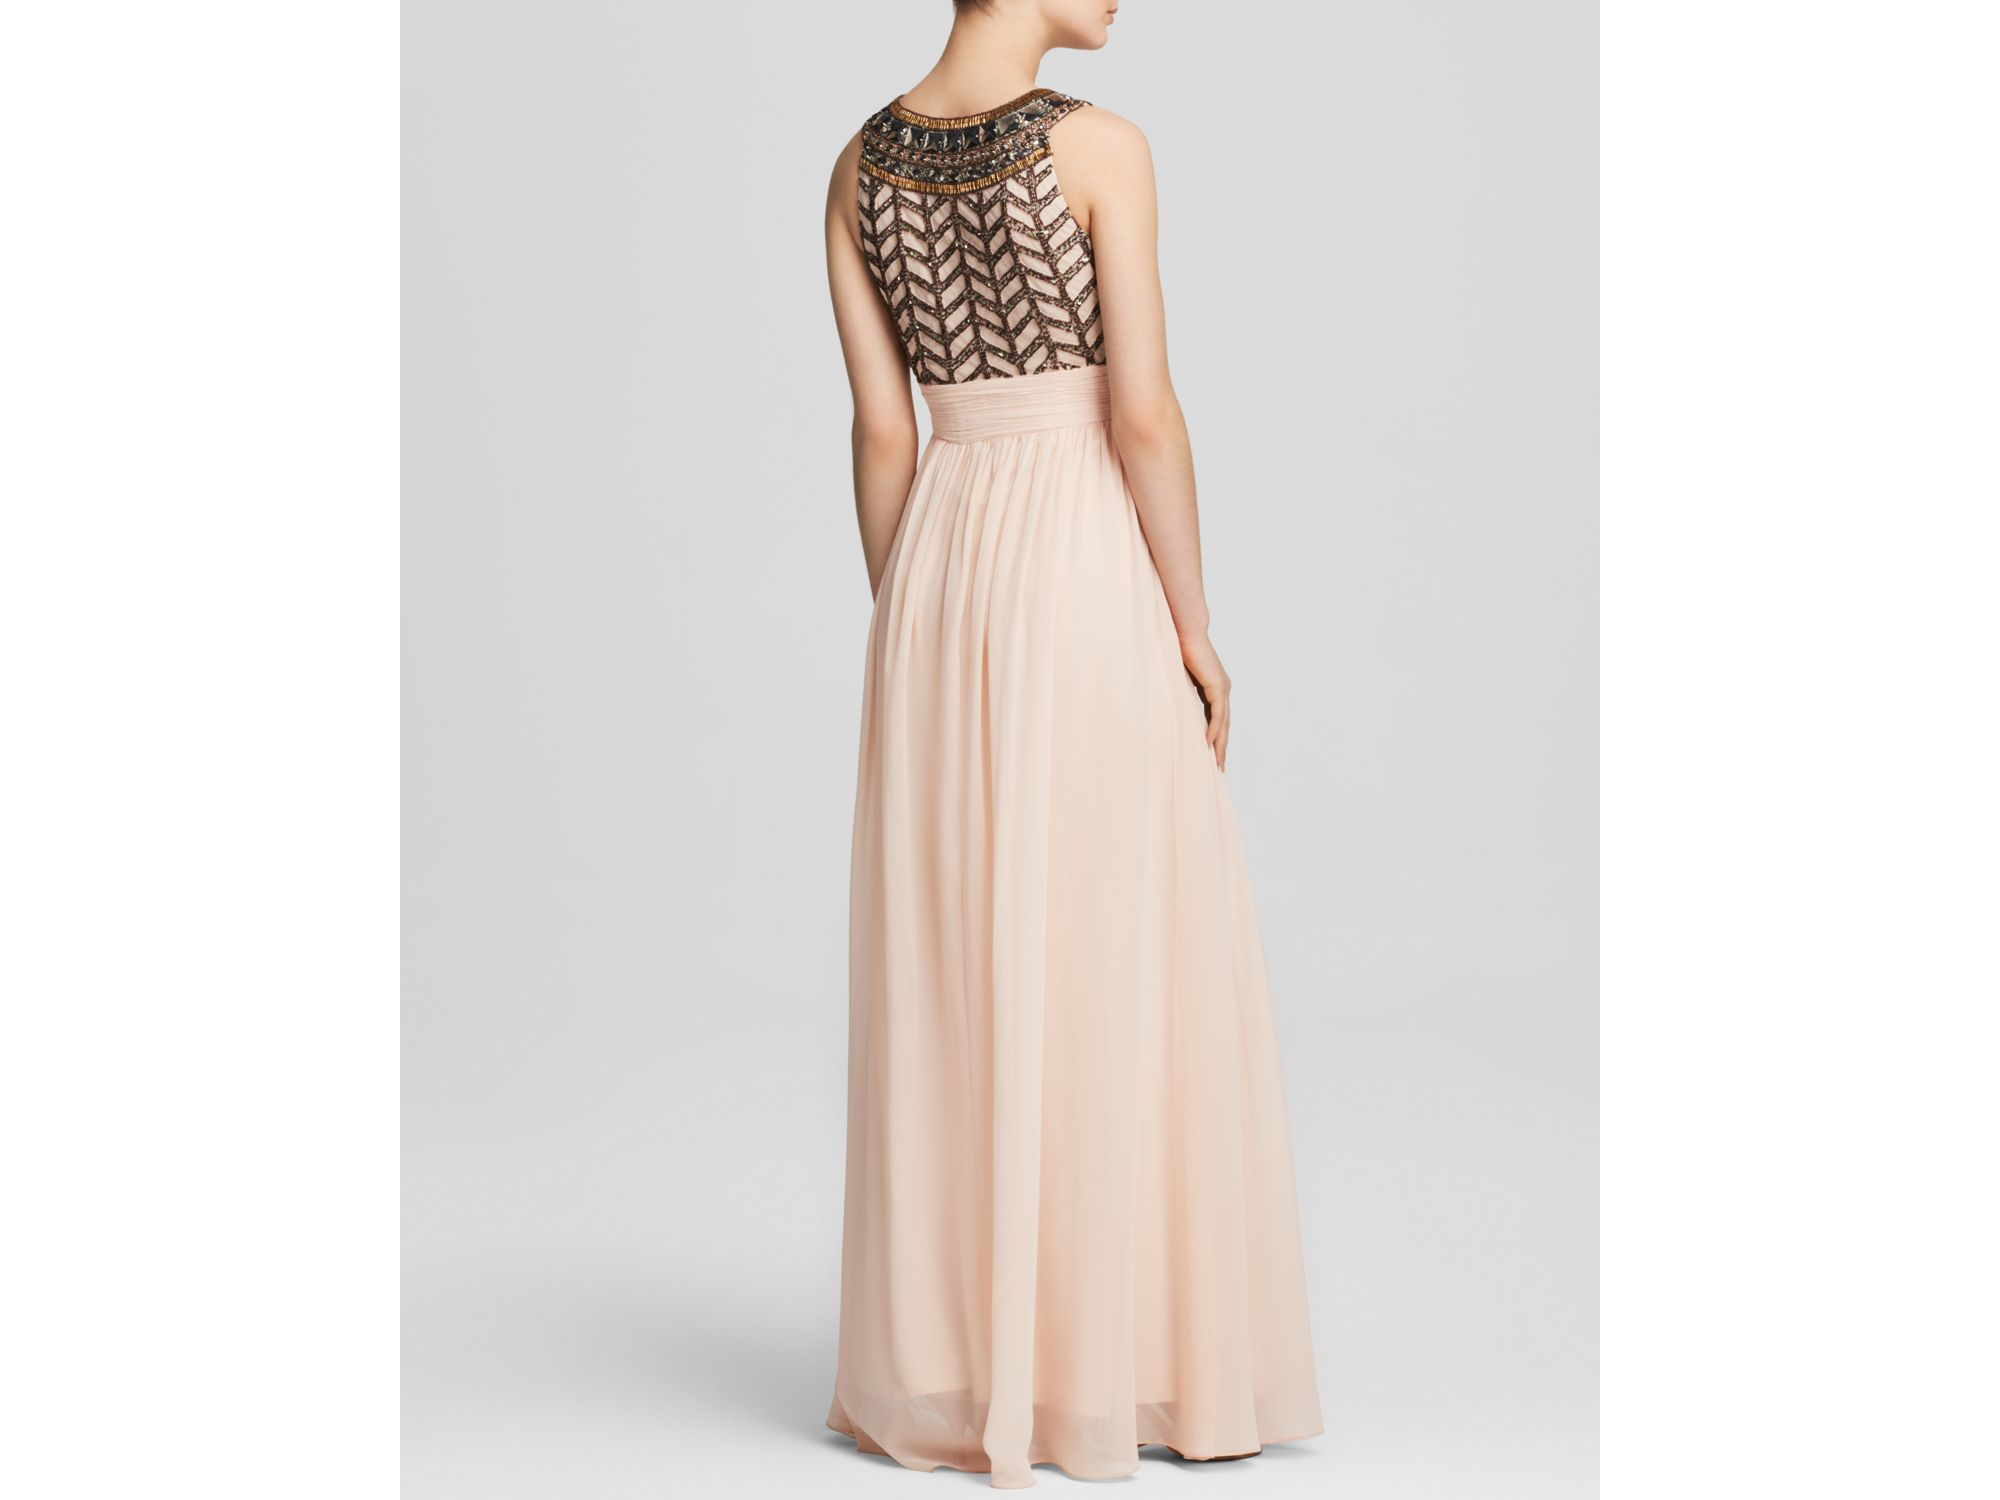 Lyst - Js Collections Gown - Chiffon Beaded Bodice in Pink